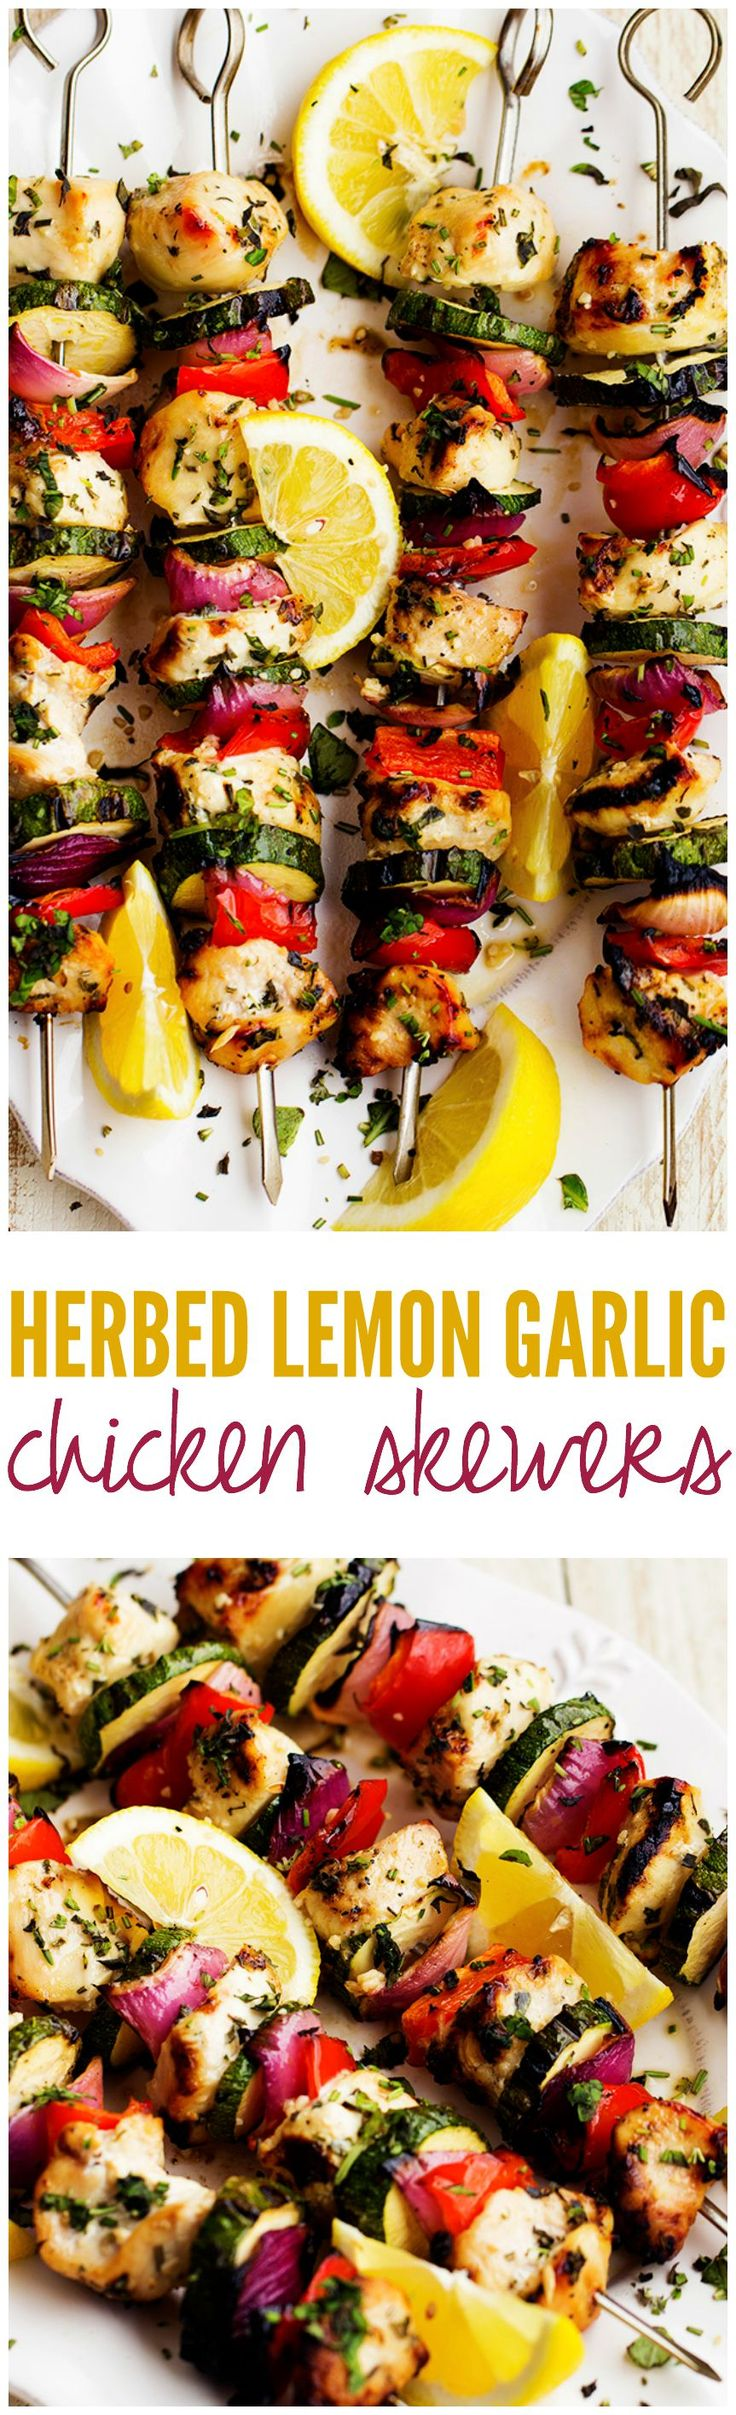 Herbed Lemon Garlic Chicken Skewers - fast and flavorful marinade, fresh and bright summer veggies, & under 400 calories! : the recipegirl